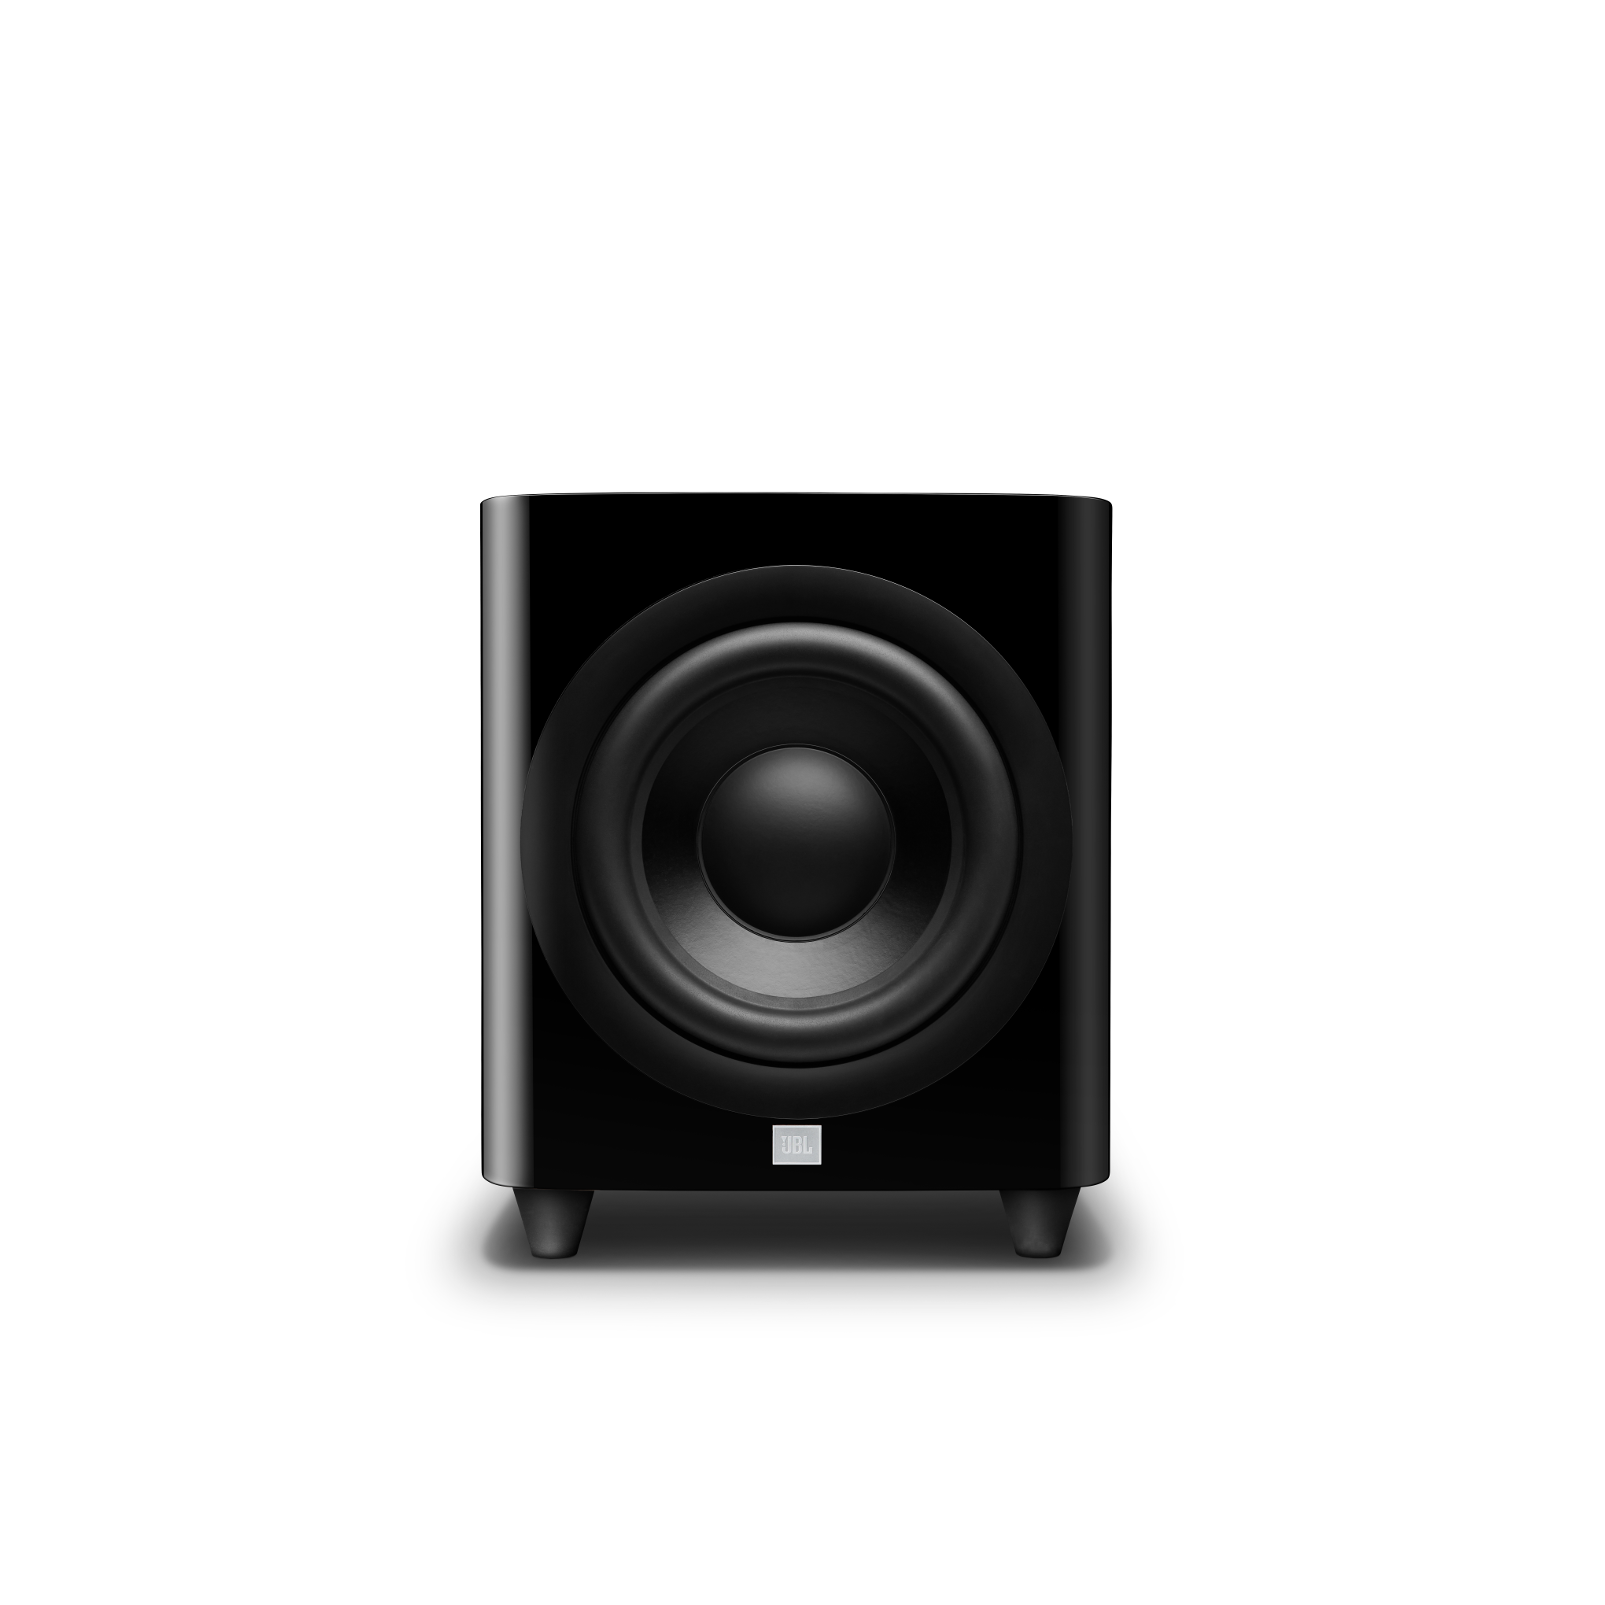 HDI-1200P - Black Gloss - 12-inch (300mm) 1,000W Powered Subwoofer - Hero